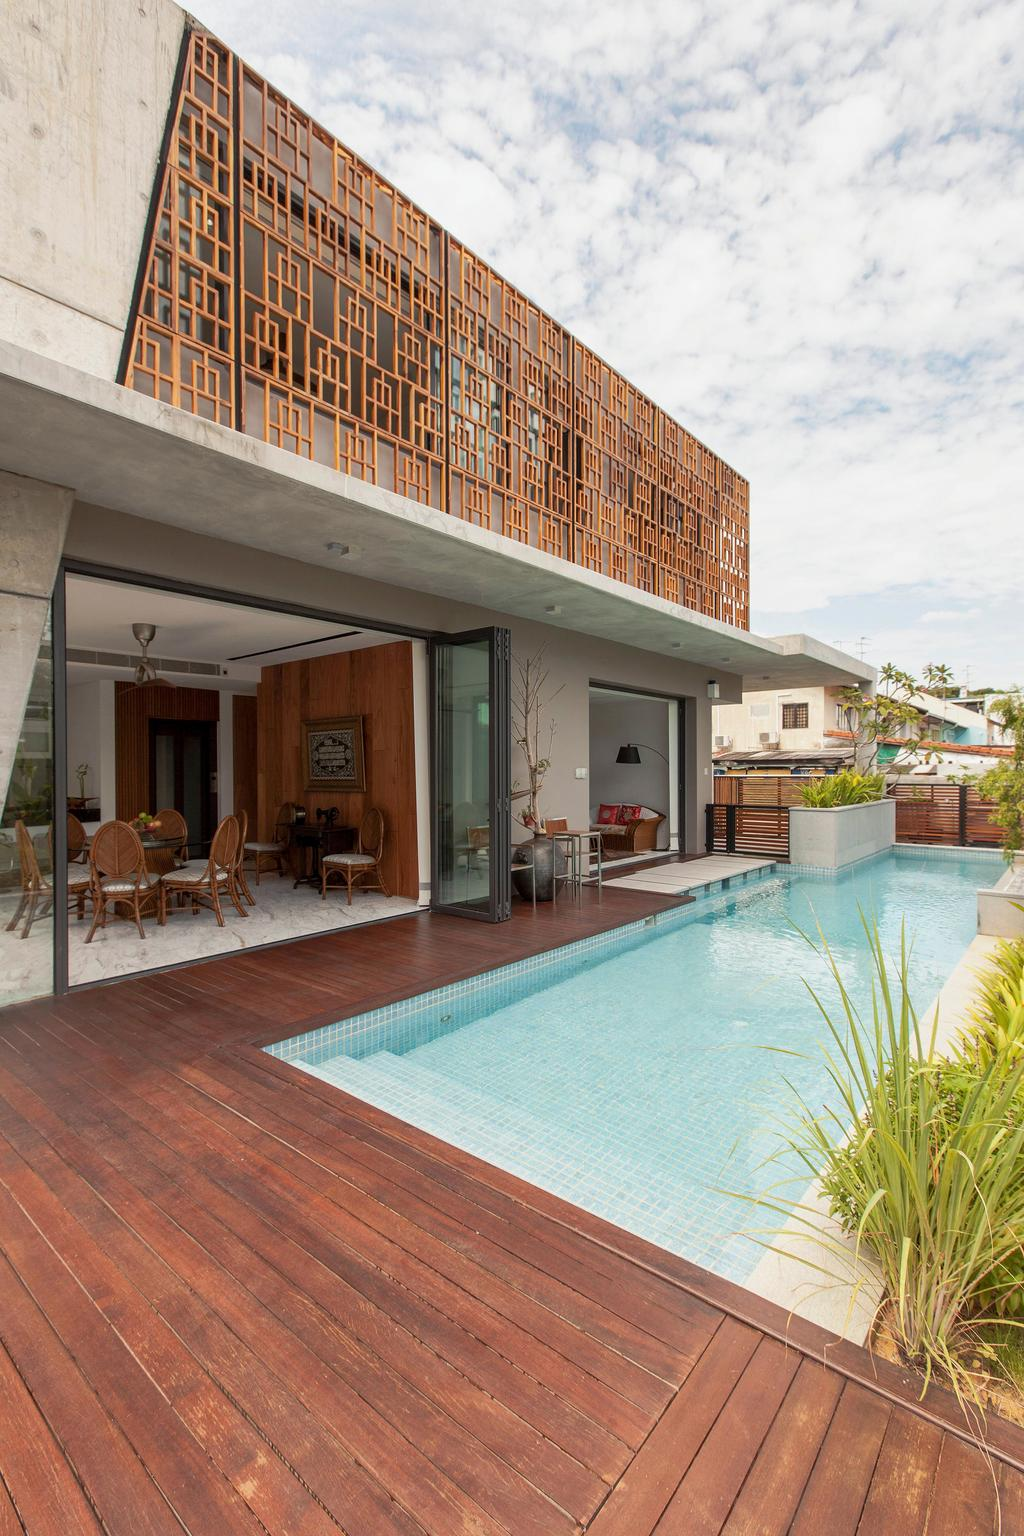 Contemporary, Landed, Siglap Plain, Architect, Aamer Architects, Building, House, Housing, Villa, Hotel, Pool, Resort, Swimming Pool, Water, Flora, Jar, Plant, Potted Plant, Pottery, Vase, Dining Table, Furniture, Table